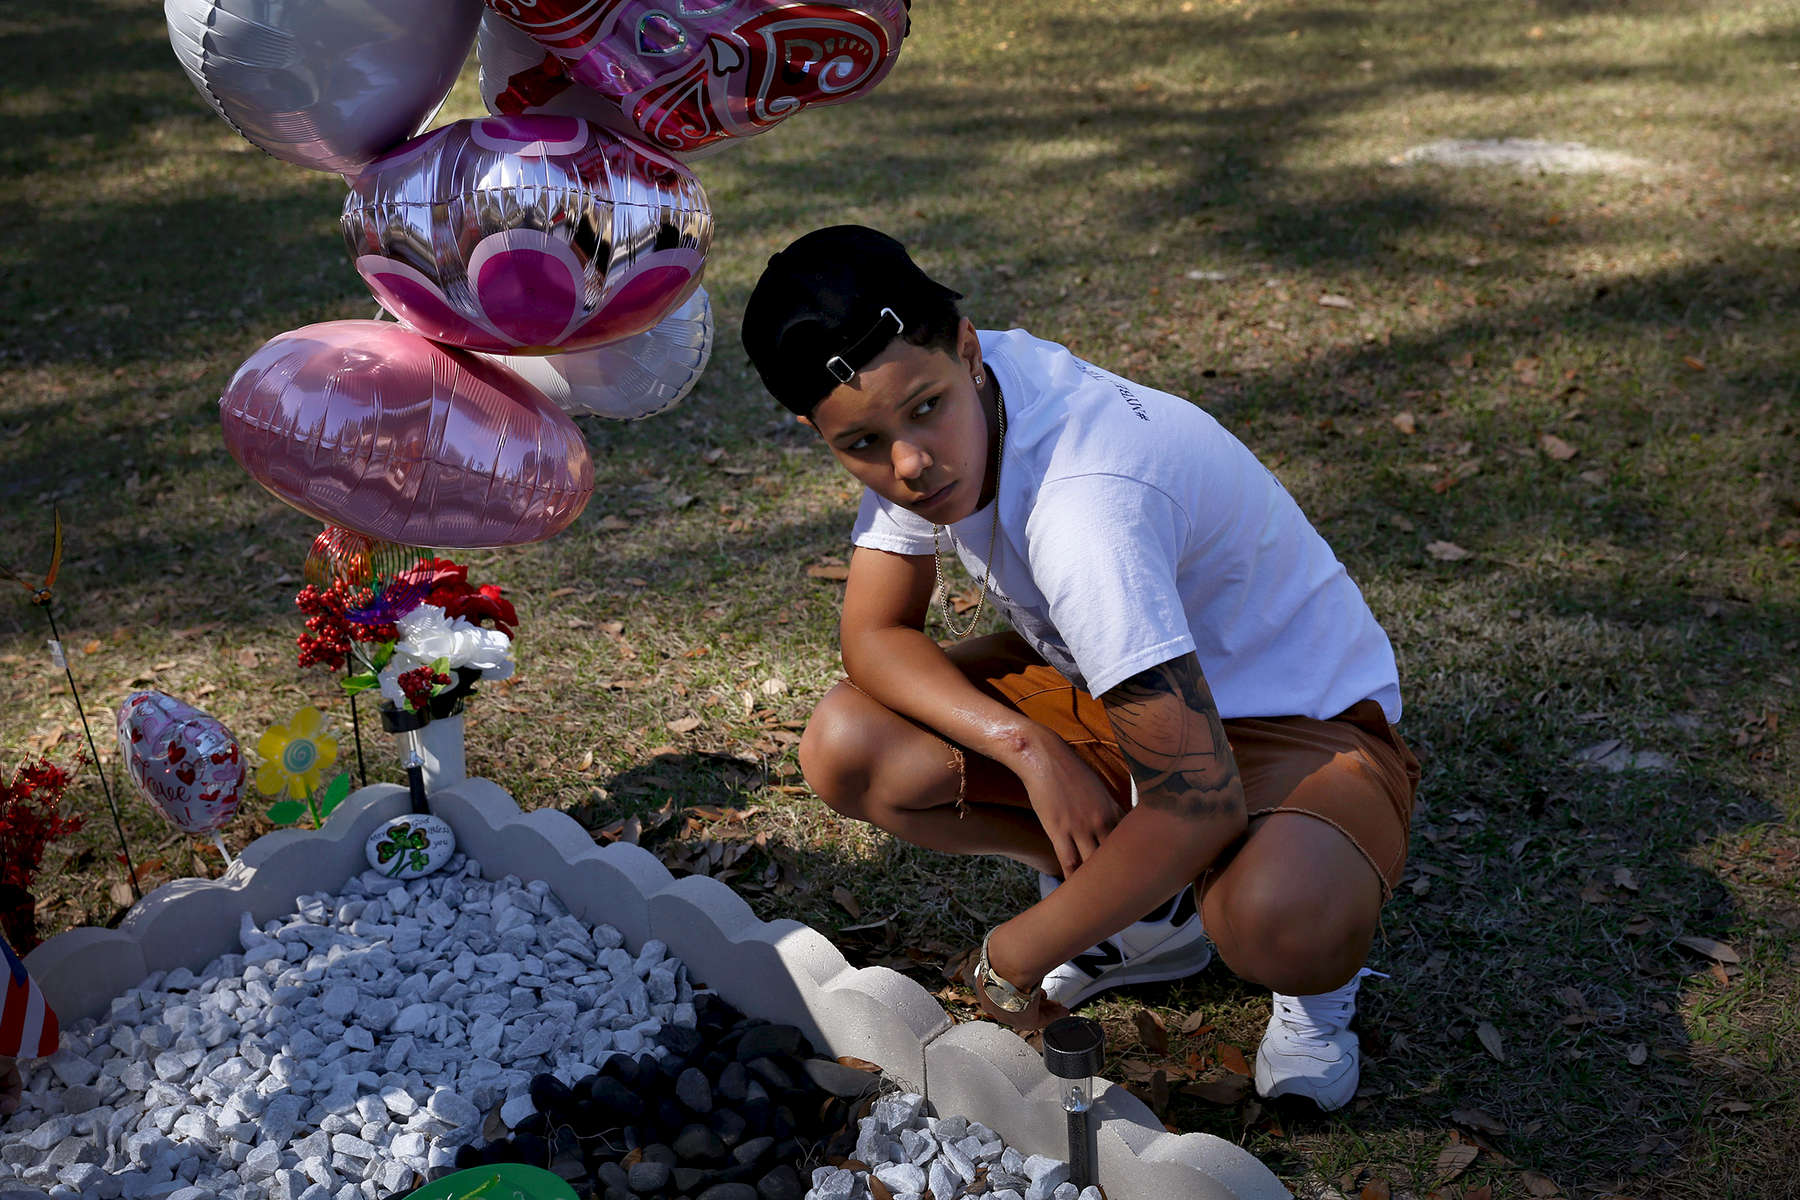 Kaliesha Andino, 19, visits the grave of her friend Omar eight months after the Pulse shooting in Orlando, Fla., on Sunday, February 12, 2017. Luis Omar Ocasio-Capo was 20 when he was killed during the shooting. They had been friends since middle school.(Photo by Preston Gannaway © 2017)